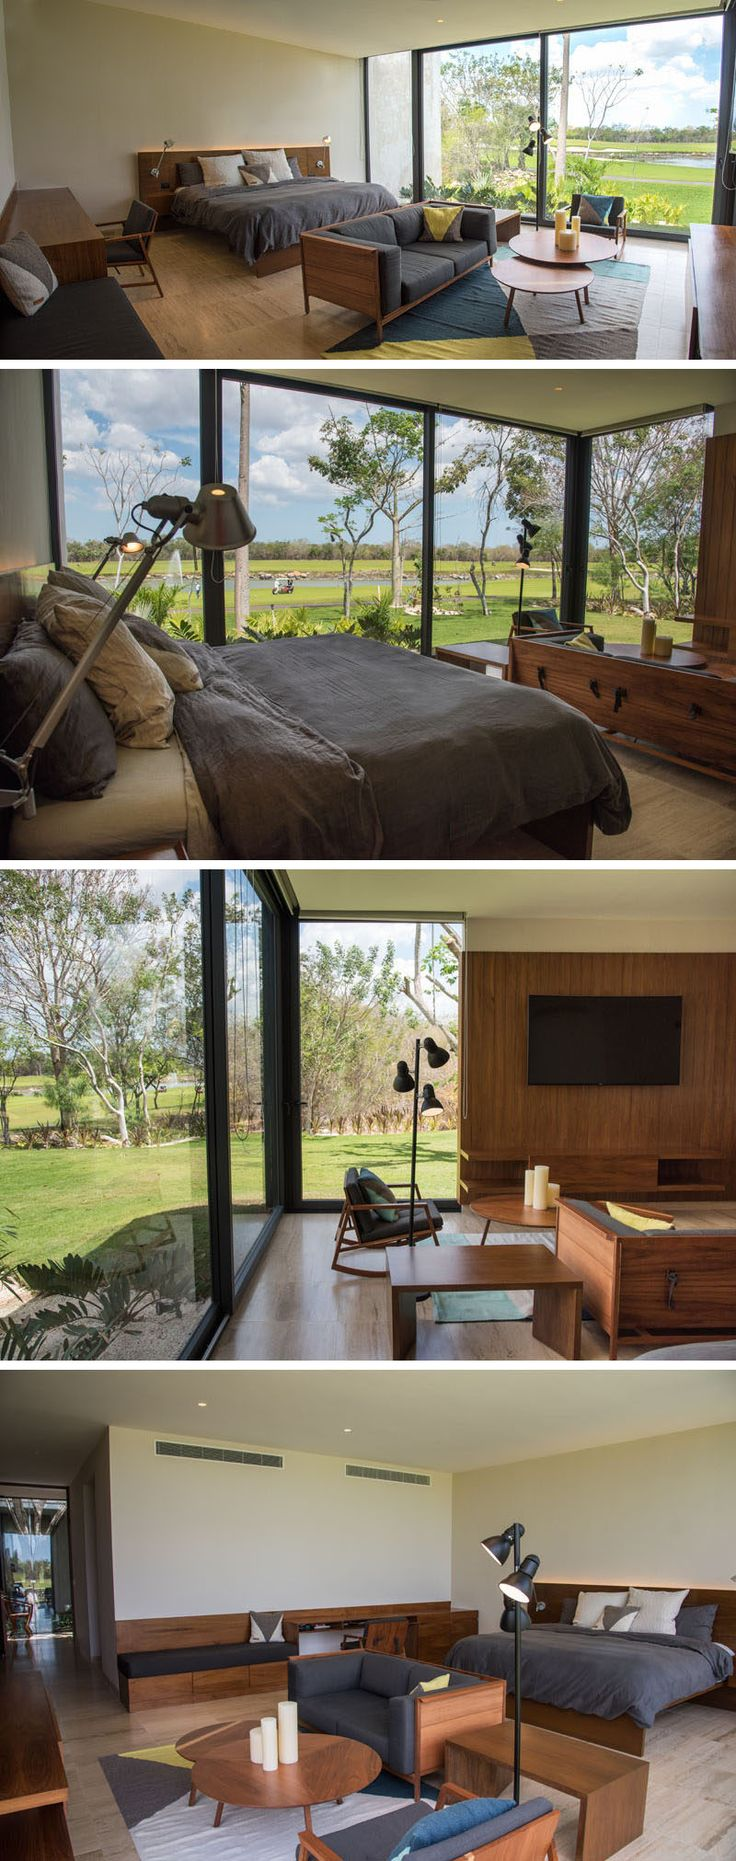 This modern master bedroom, with a lounge and built-in desk, looks out onto the backyard through floor-to-ceiling windows.